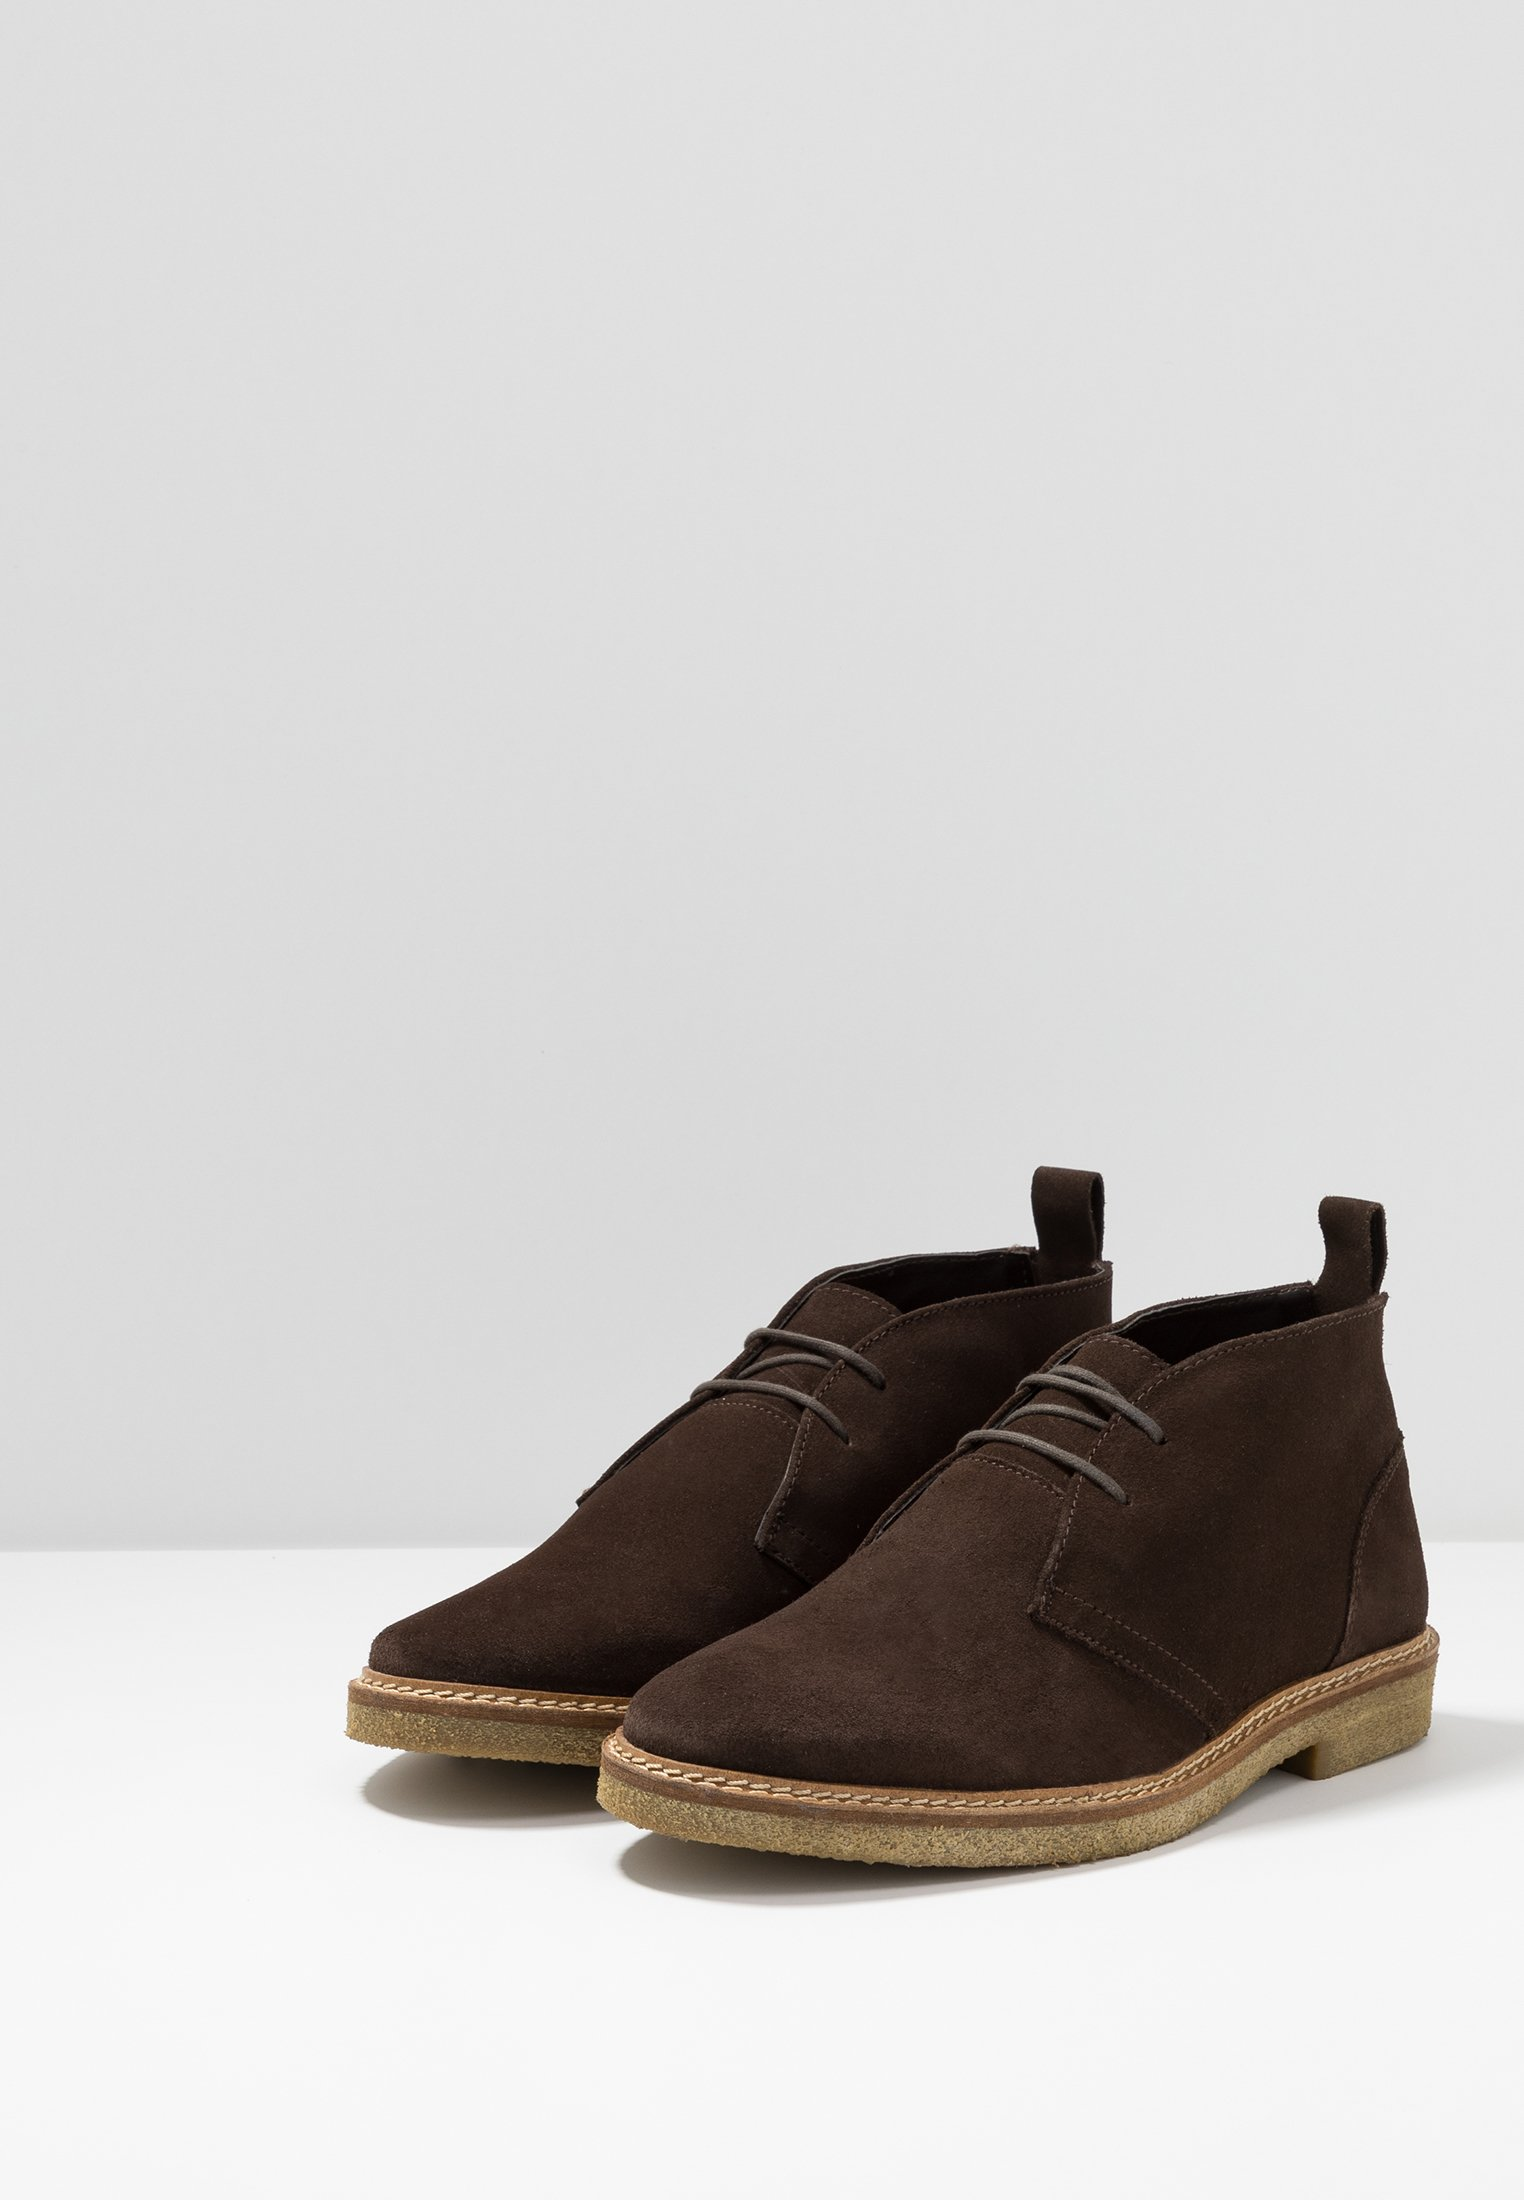 Walk ChukkaChaussures Hornchuch Brown À London Lacets rBoQxWdCeE